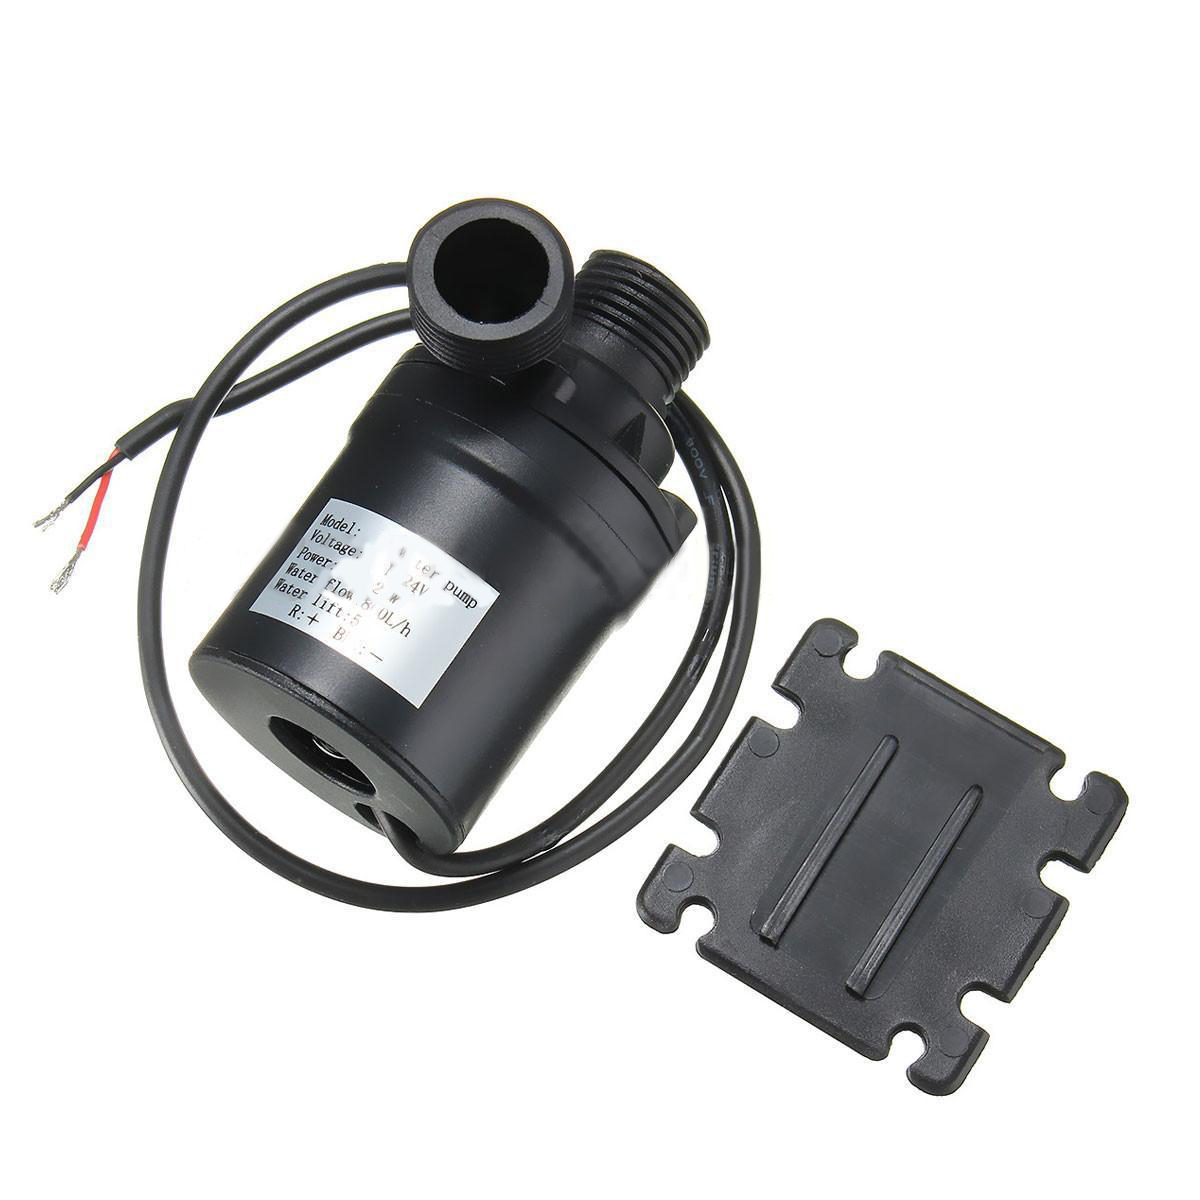 все цены на 1pc Black Brushless Water Pump High Efficiency ZYW680 Mini Solar Water Circulation Pump 800L/H DC 12V-24V